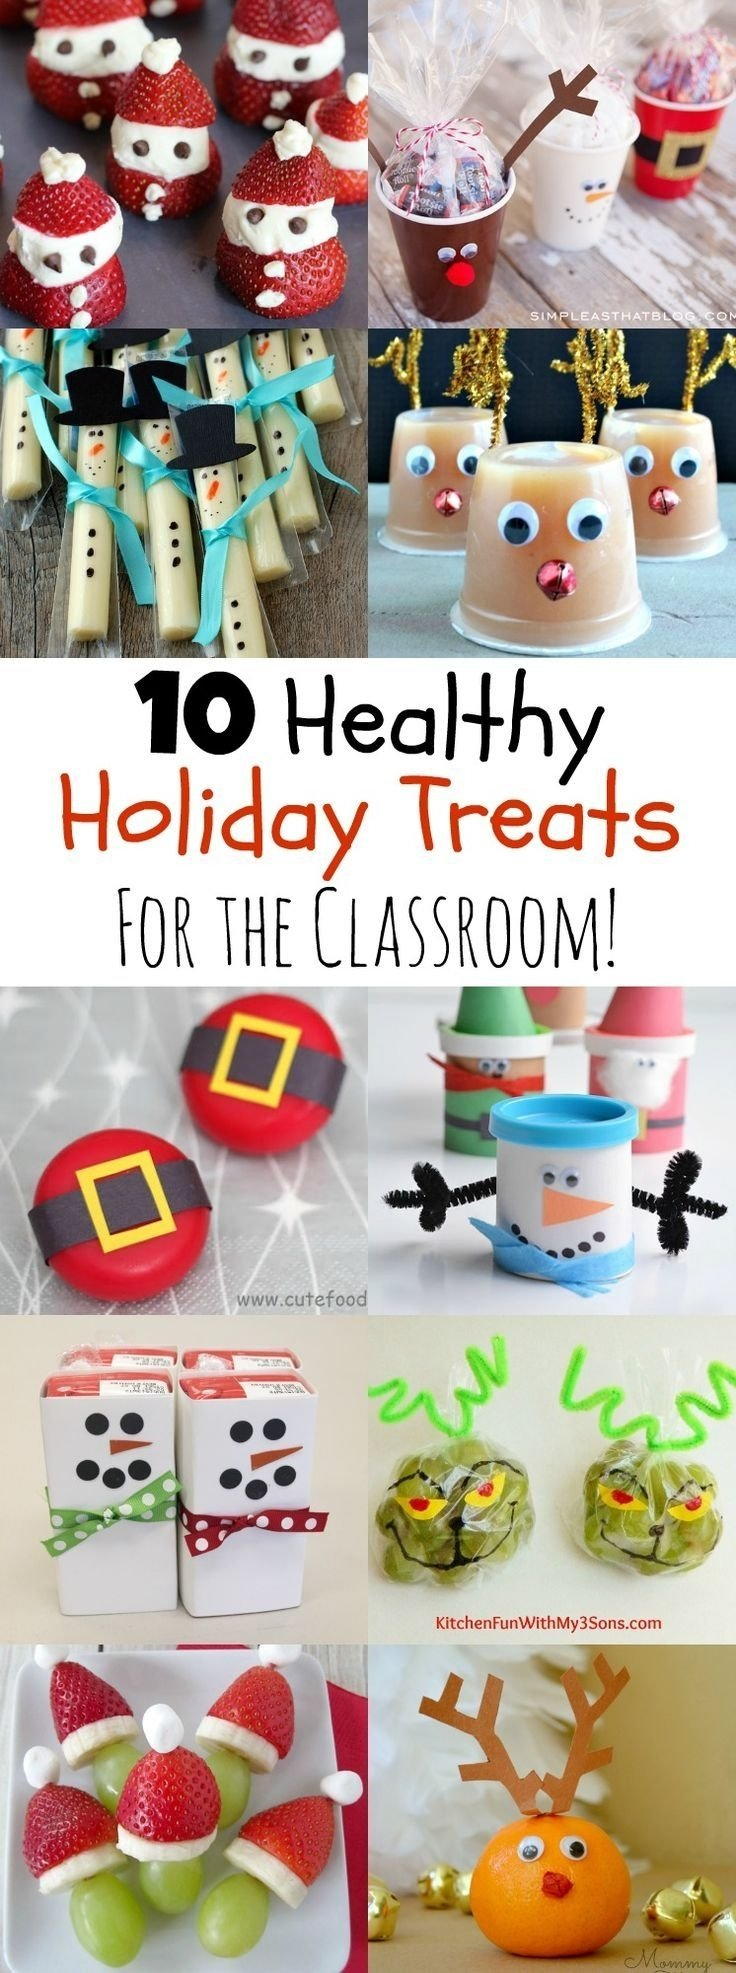 10 Cute Holiday Party Ideas For Kids 479 best kid party ideas images on pinterest church carnival games 1 2020